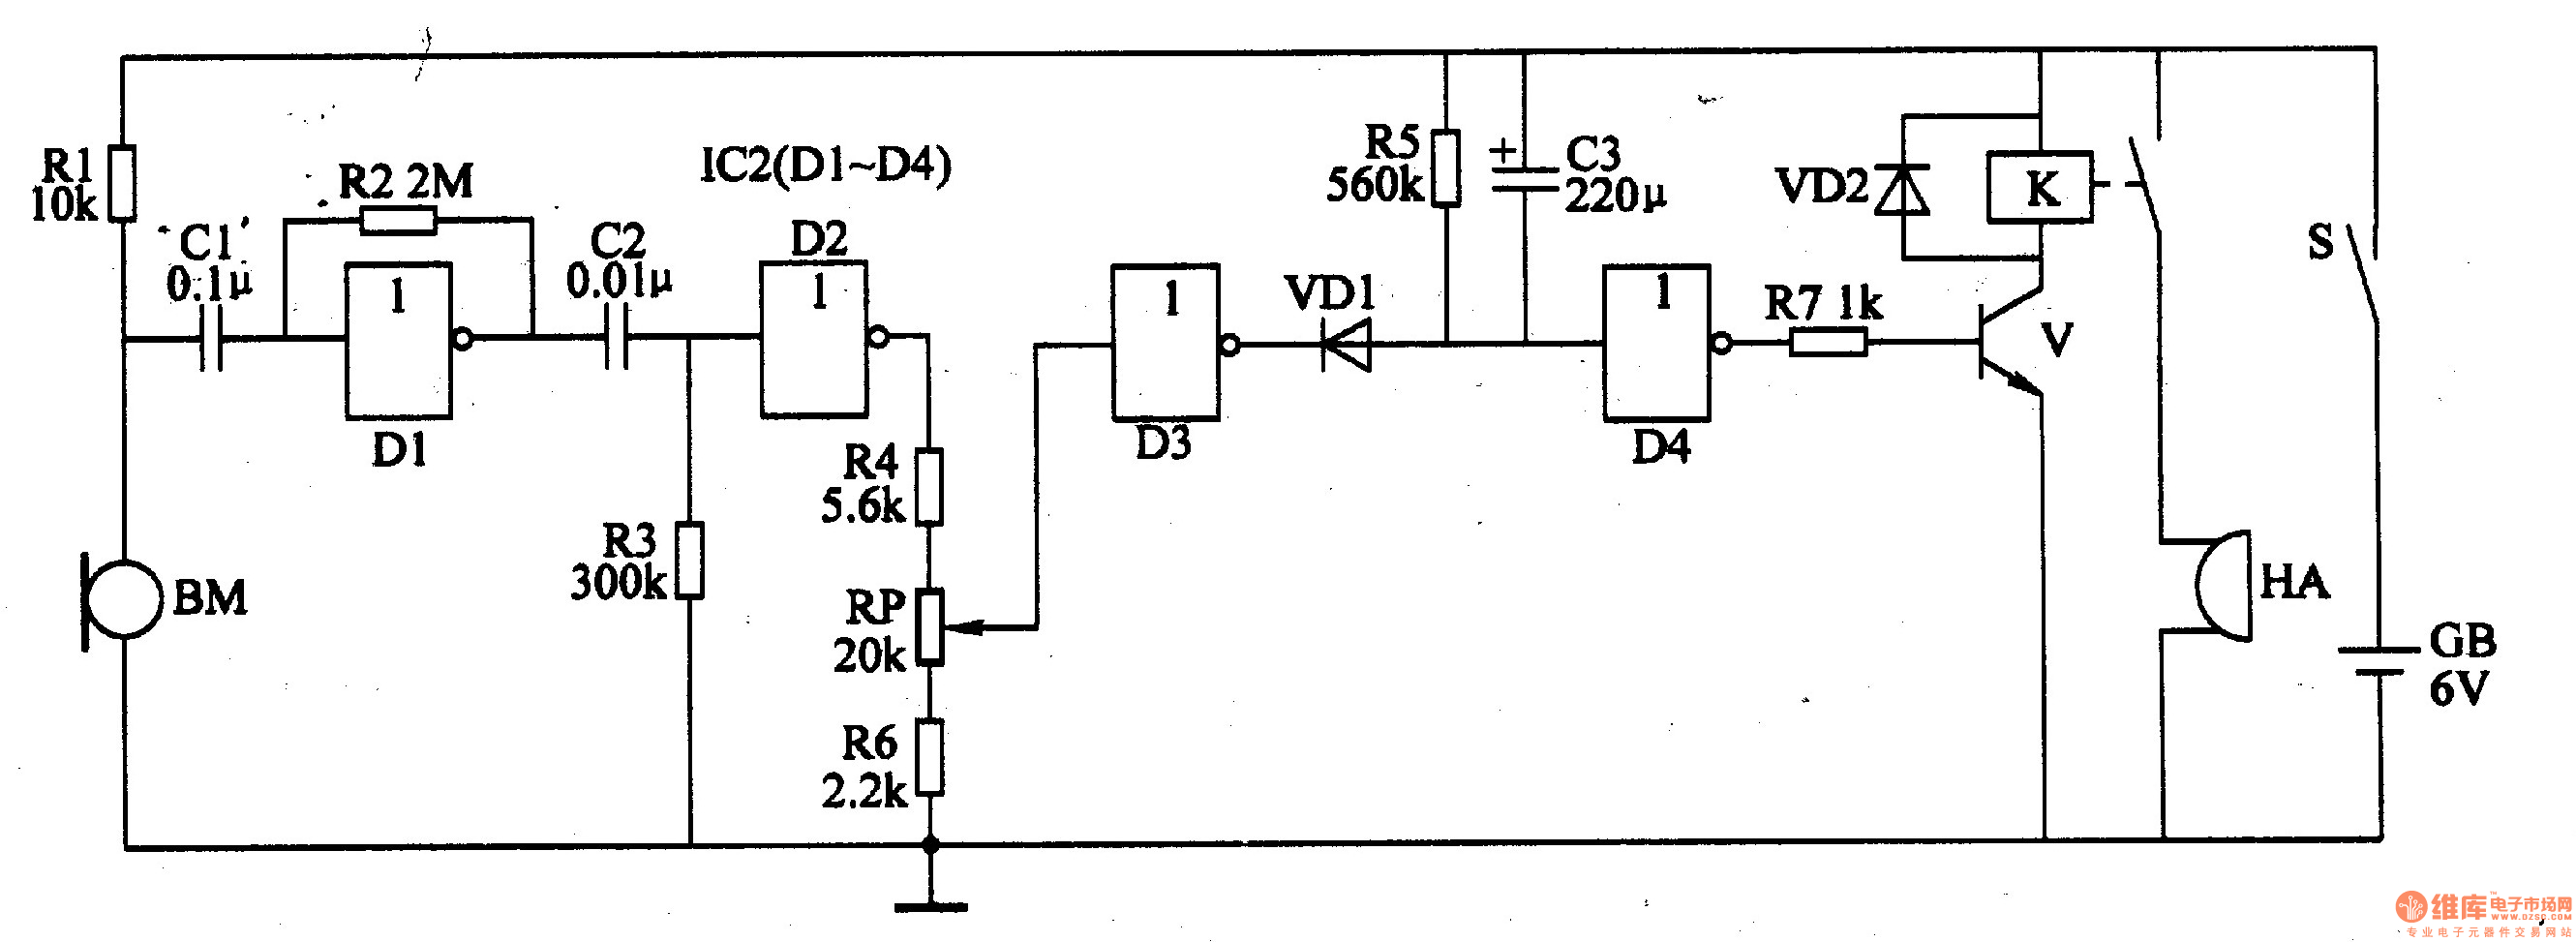 chicks hatched informing device 3 - electrical equipment circuit - circuit diagram